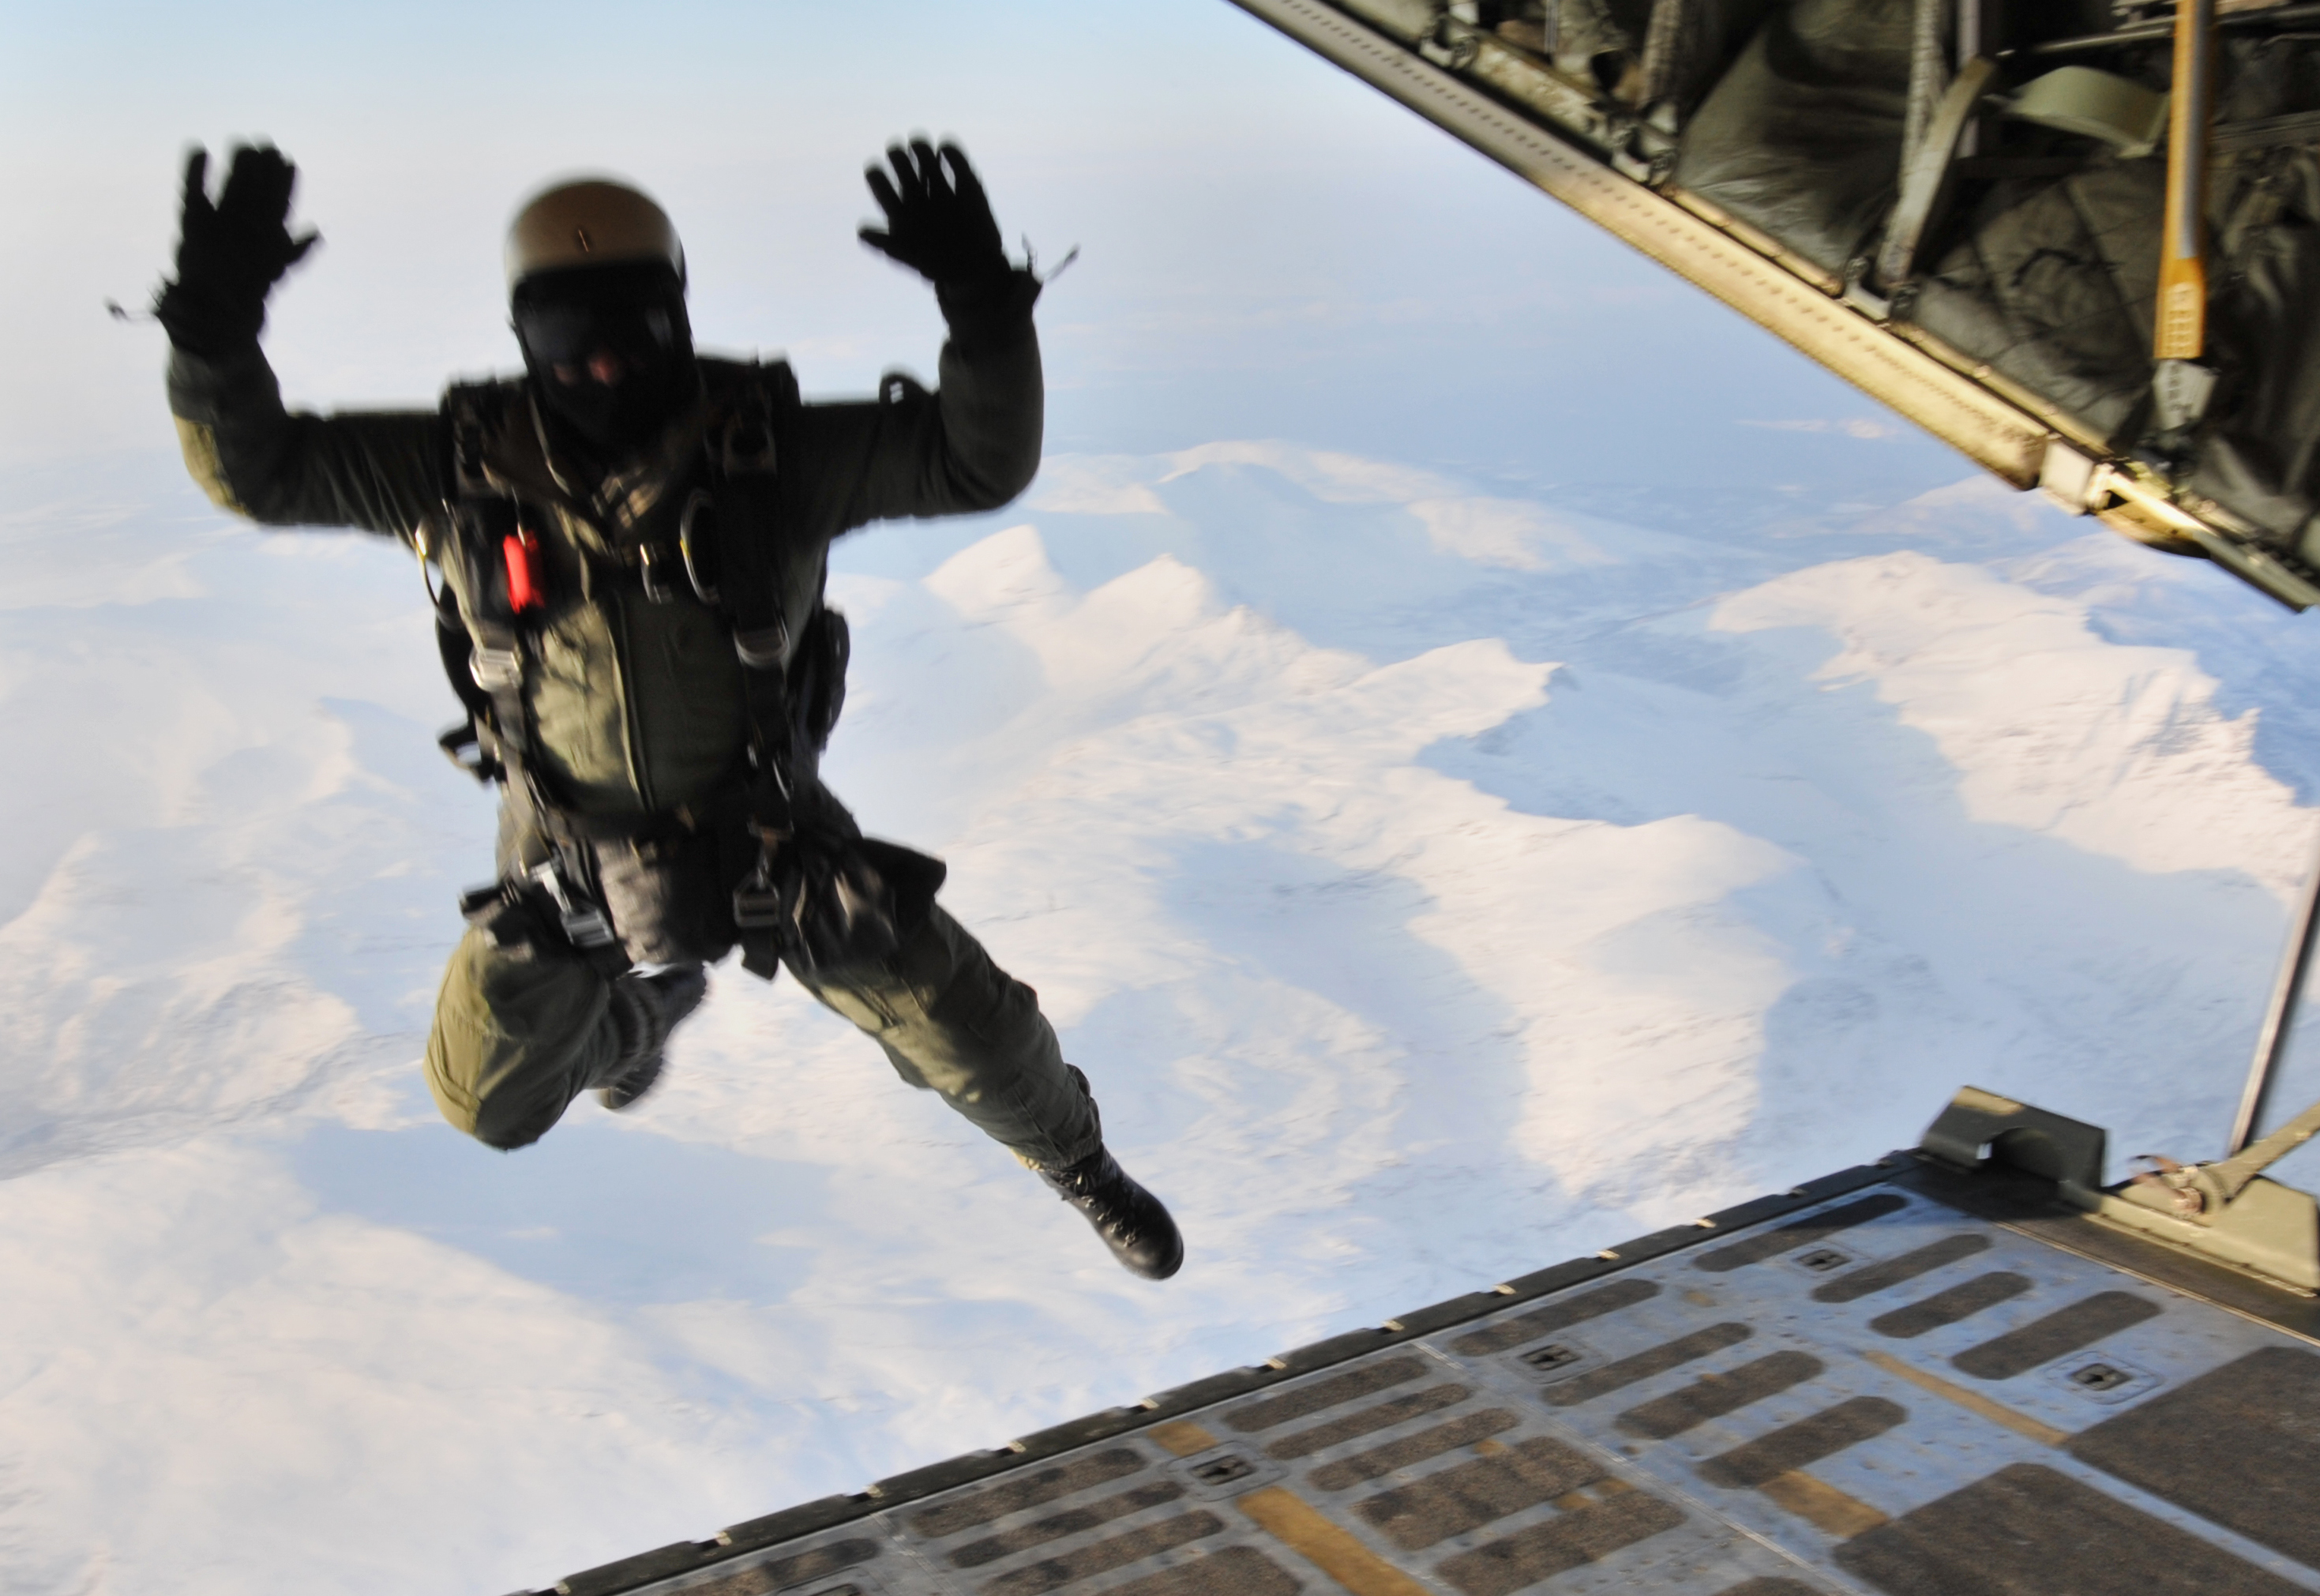 A Navy SEAL freefalls from an Austrian C-130 aircraft above the Arctic Circle in 2010. US Navy Photo